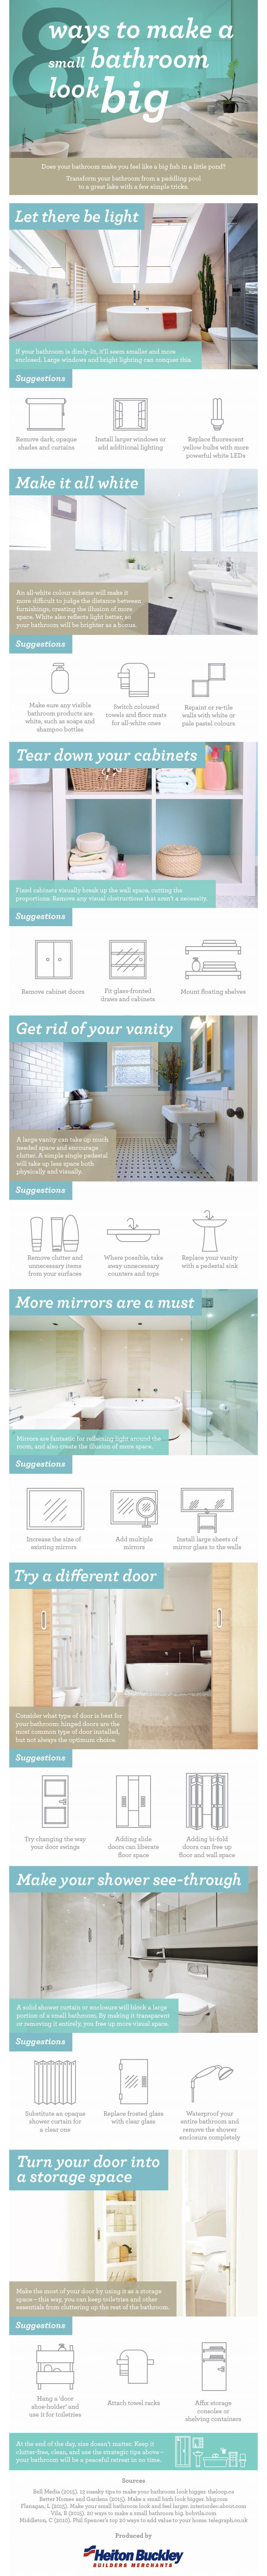 8-ways-to-make-a-small-bathroom-look-bigger